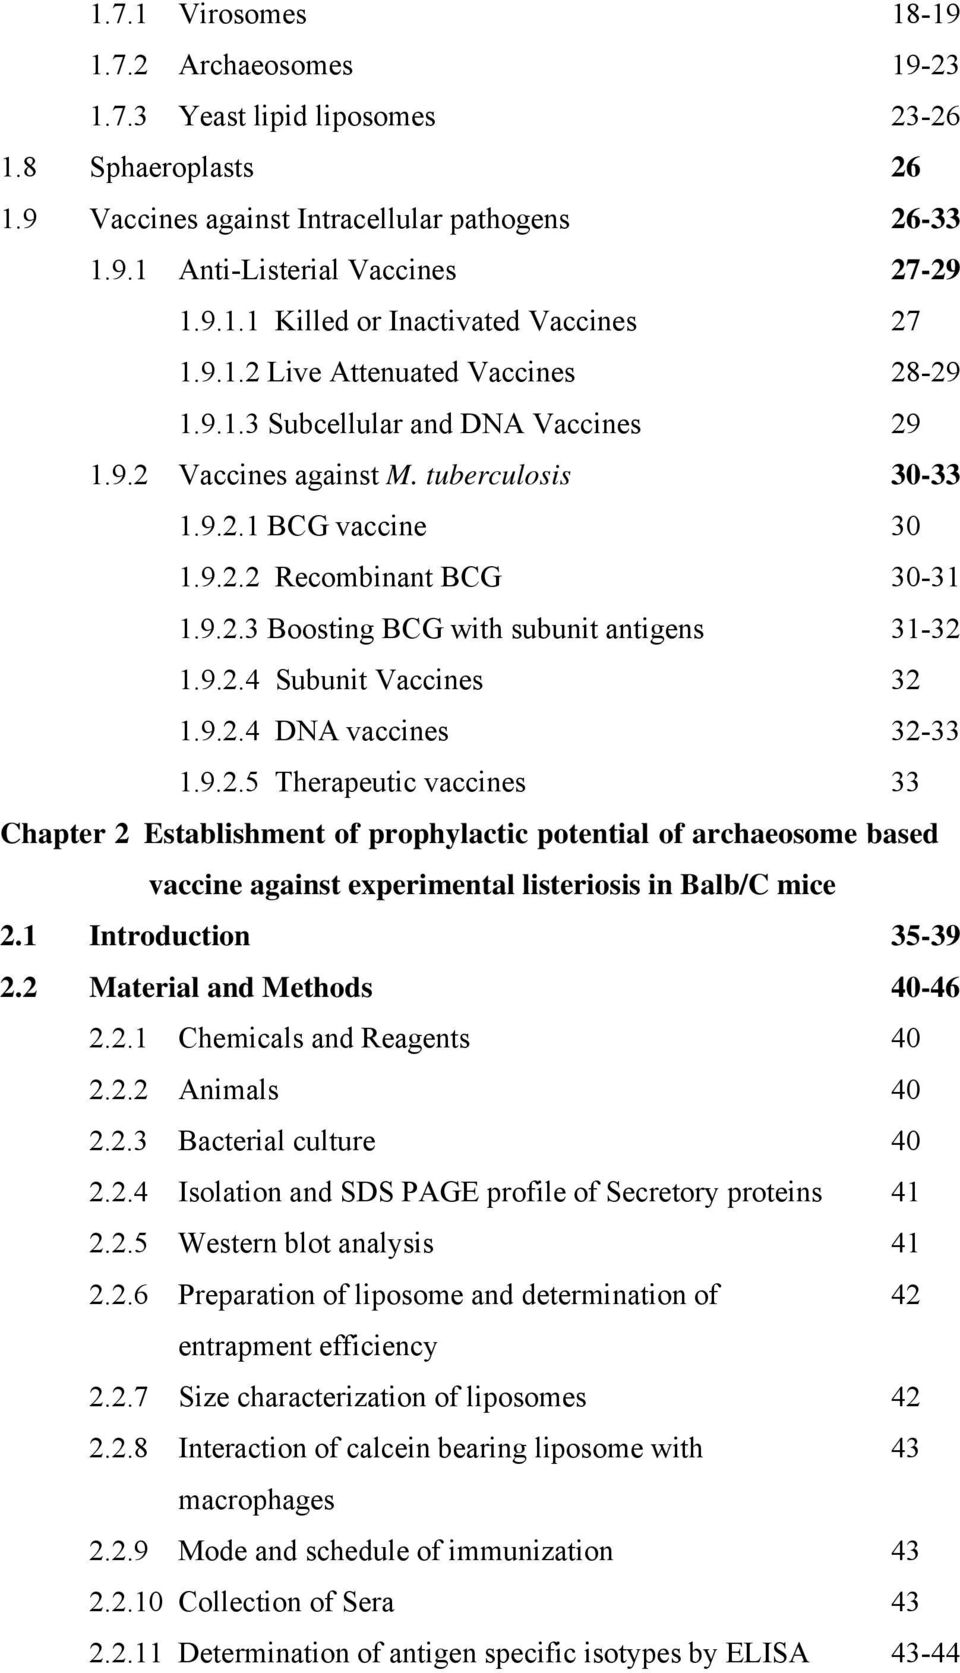 9.2.4 Subunit Vaccines 32 1.9.2.4 DNA vaccines 32-33 1.9.2.5 Therapeutic vaccines 33 Chapter 2 Establishment of prophylactic potential of archaeosome based vaccine against experimental listeriosis in Balb/C mice 2.